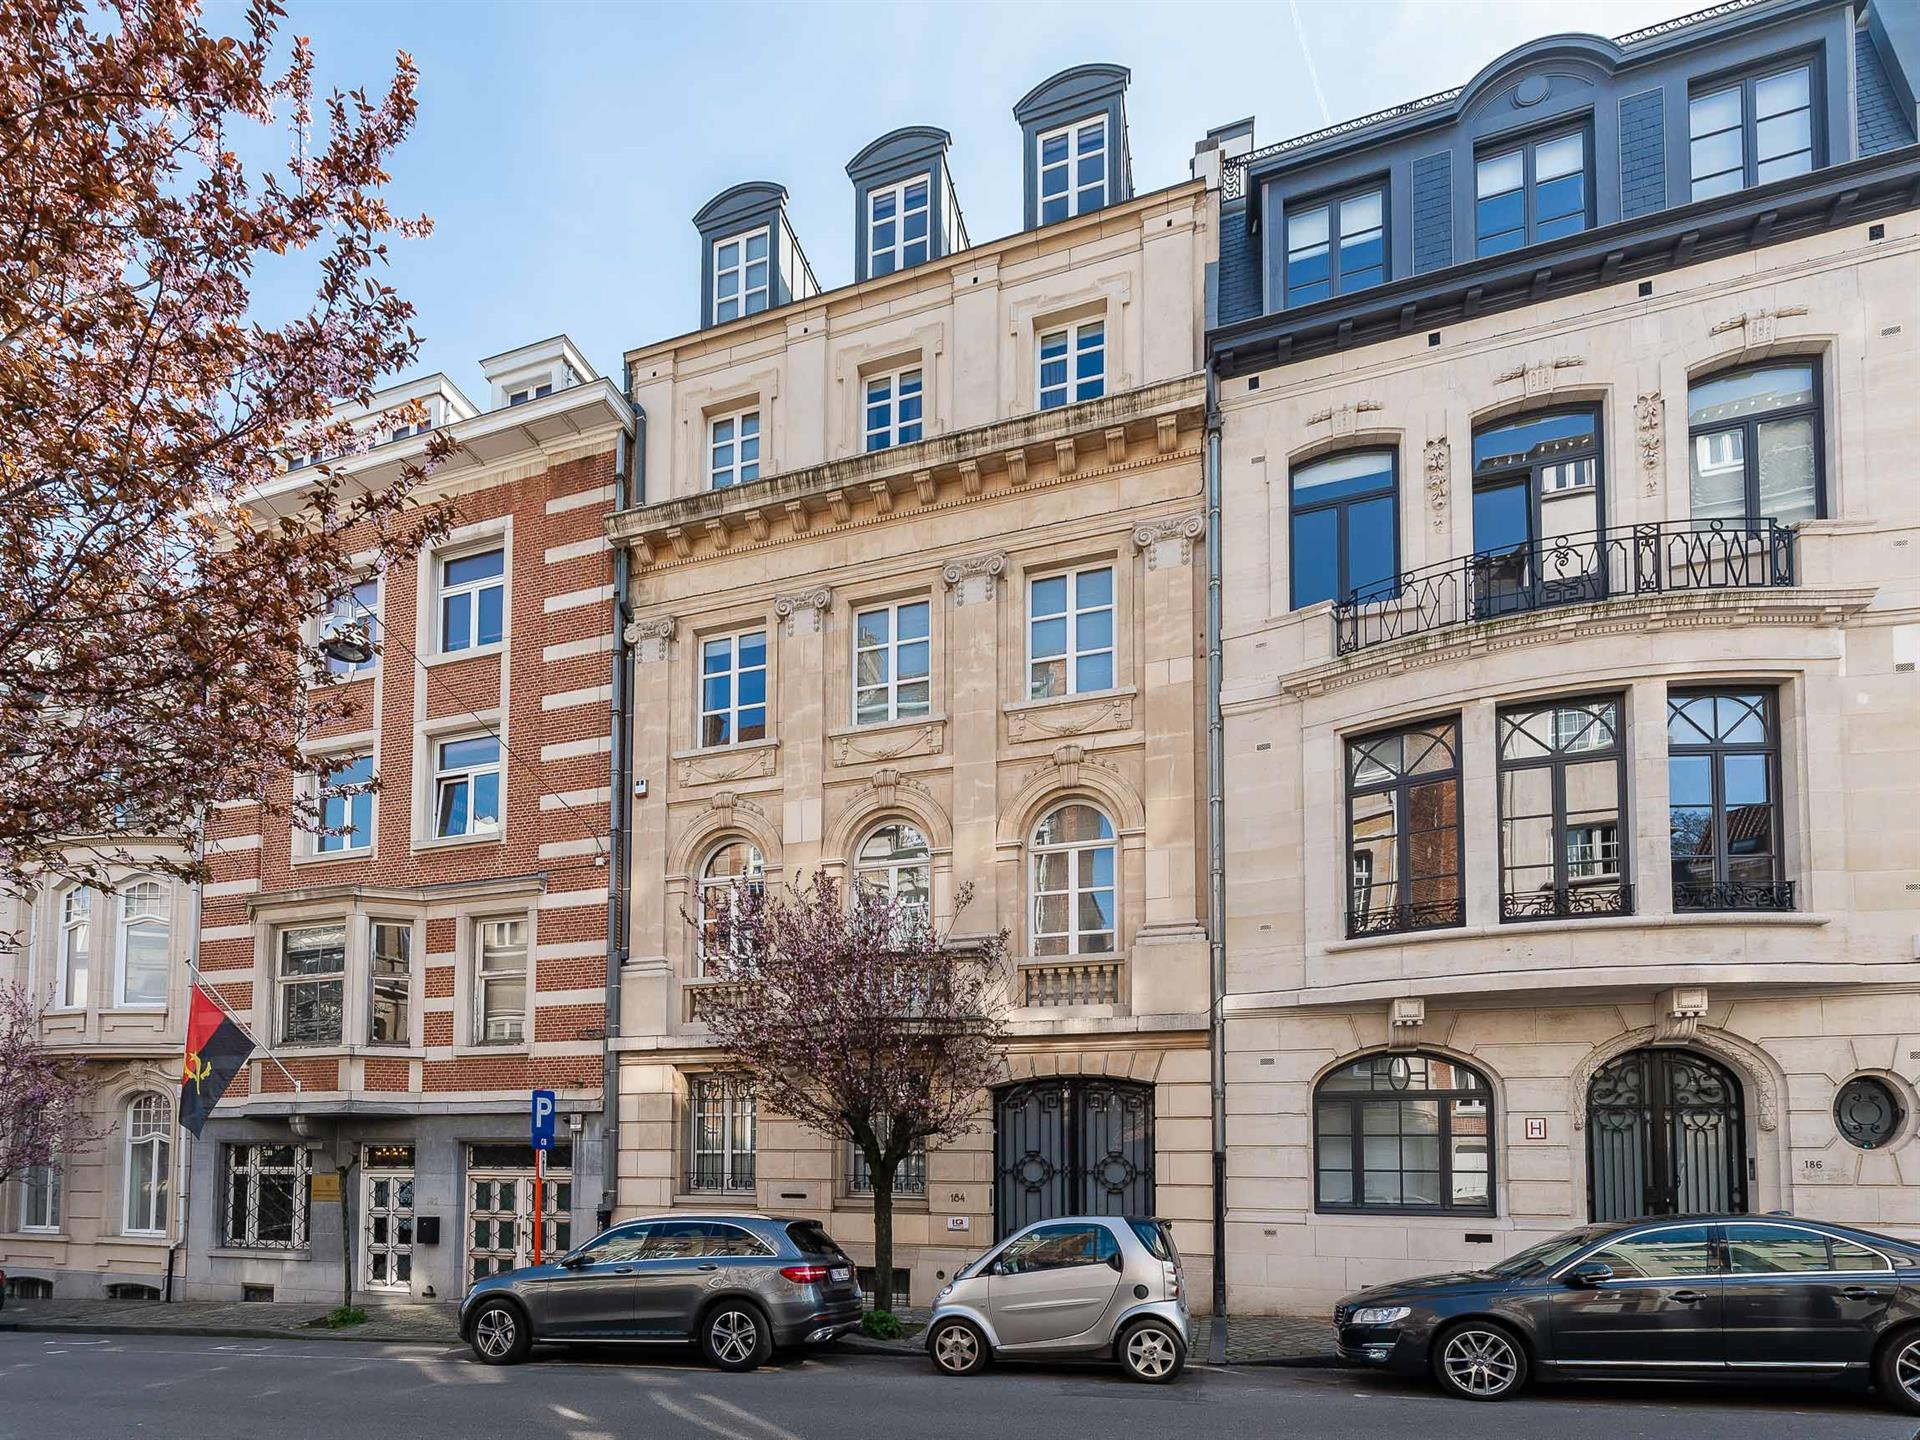 Single Family Home for sale in Rue Franz Merjay 184 1050 Ixelles, Ixelles, Brussels South and Central ,1050  , Belgium